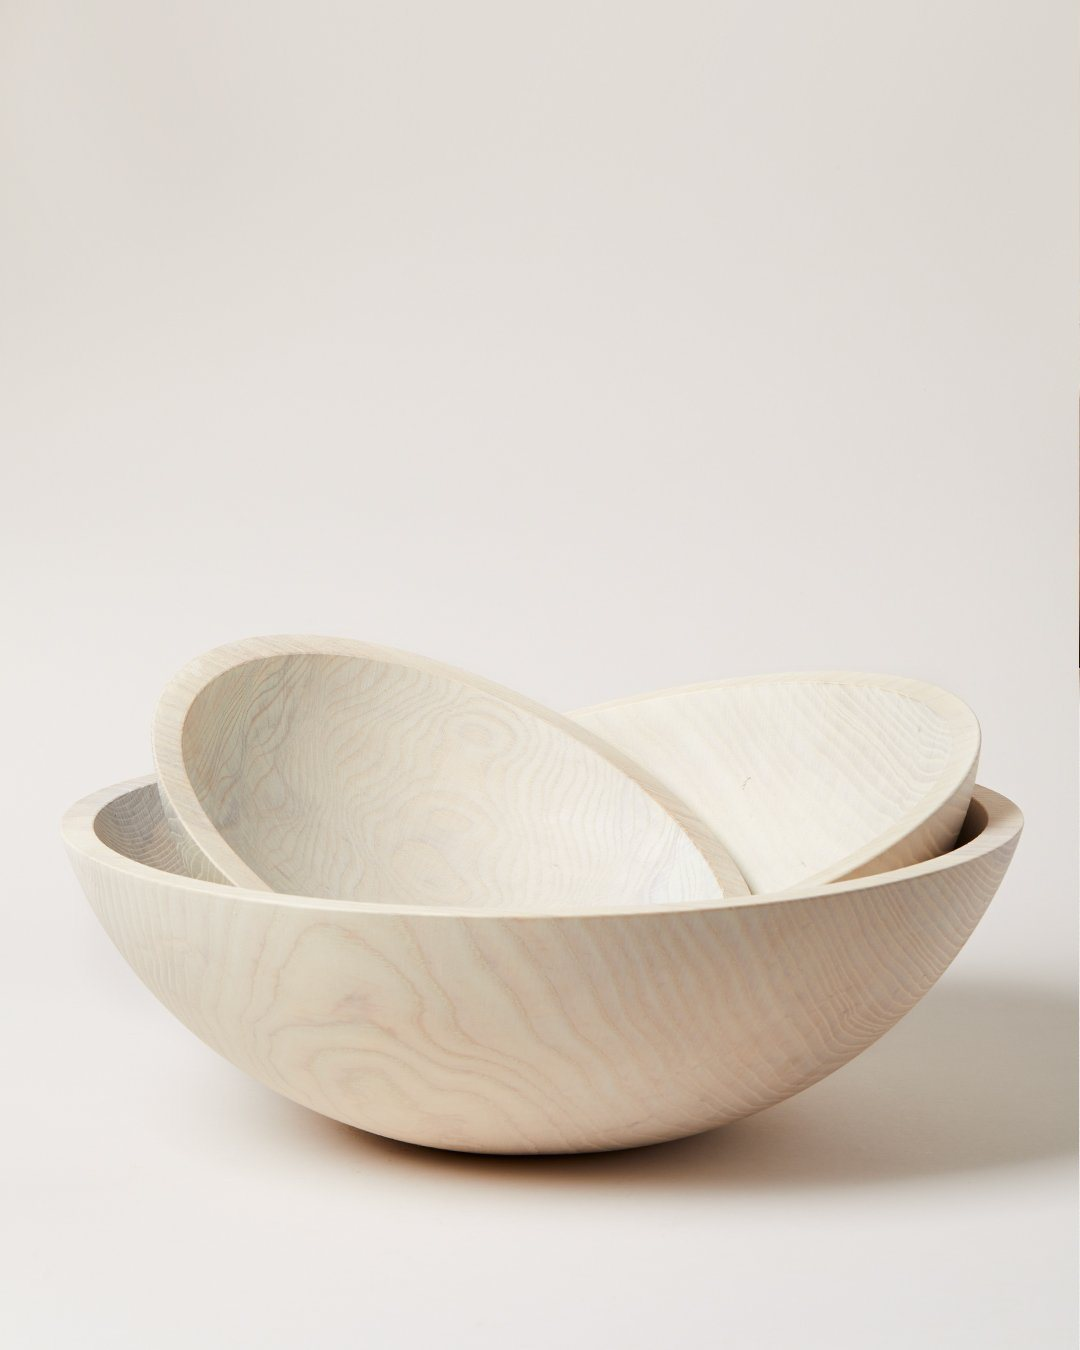 Farmhouse Pottery Crafted Wooden Bowls - White Farmhouse Pottery